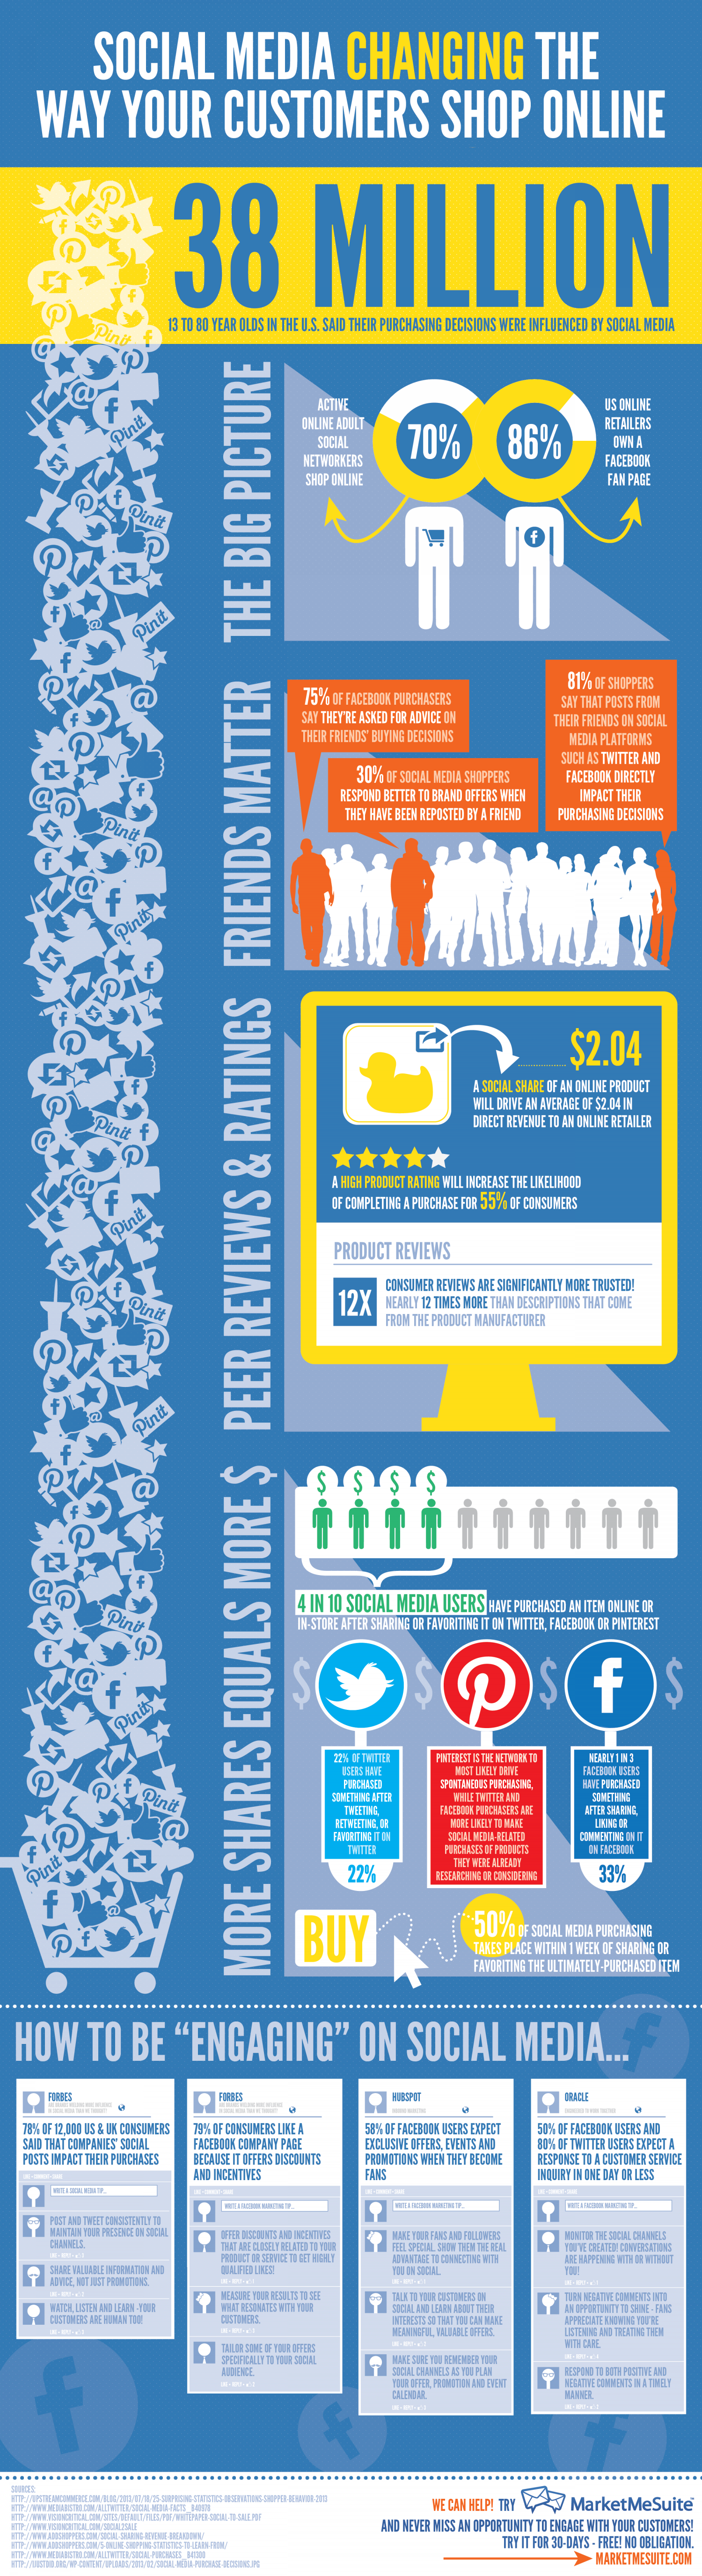 Social Media Changing The Way Your Customers Show Online Infographic